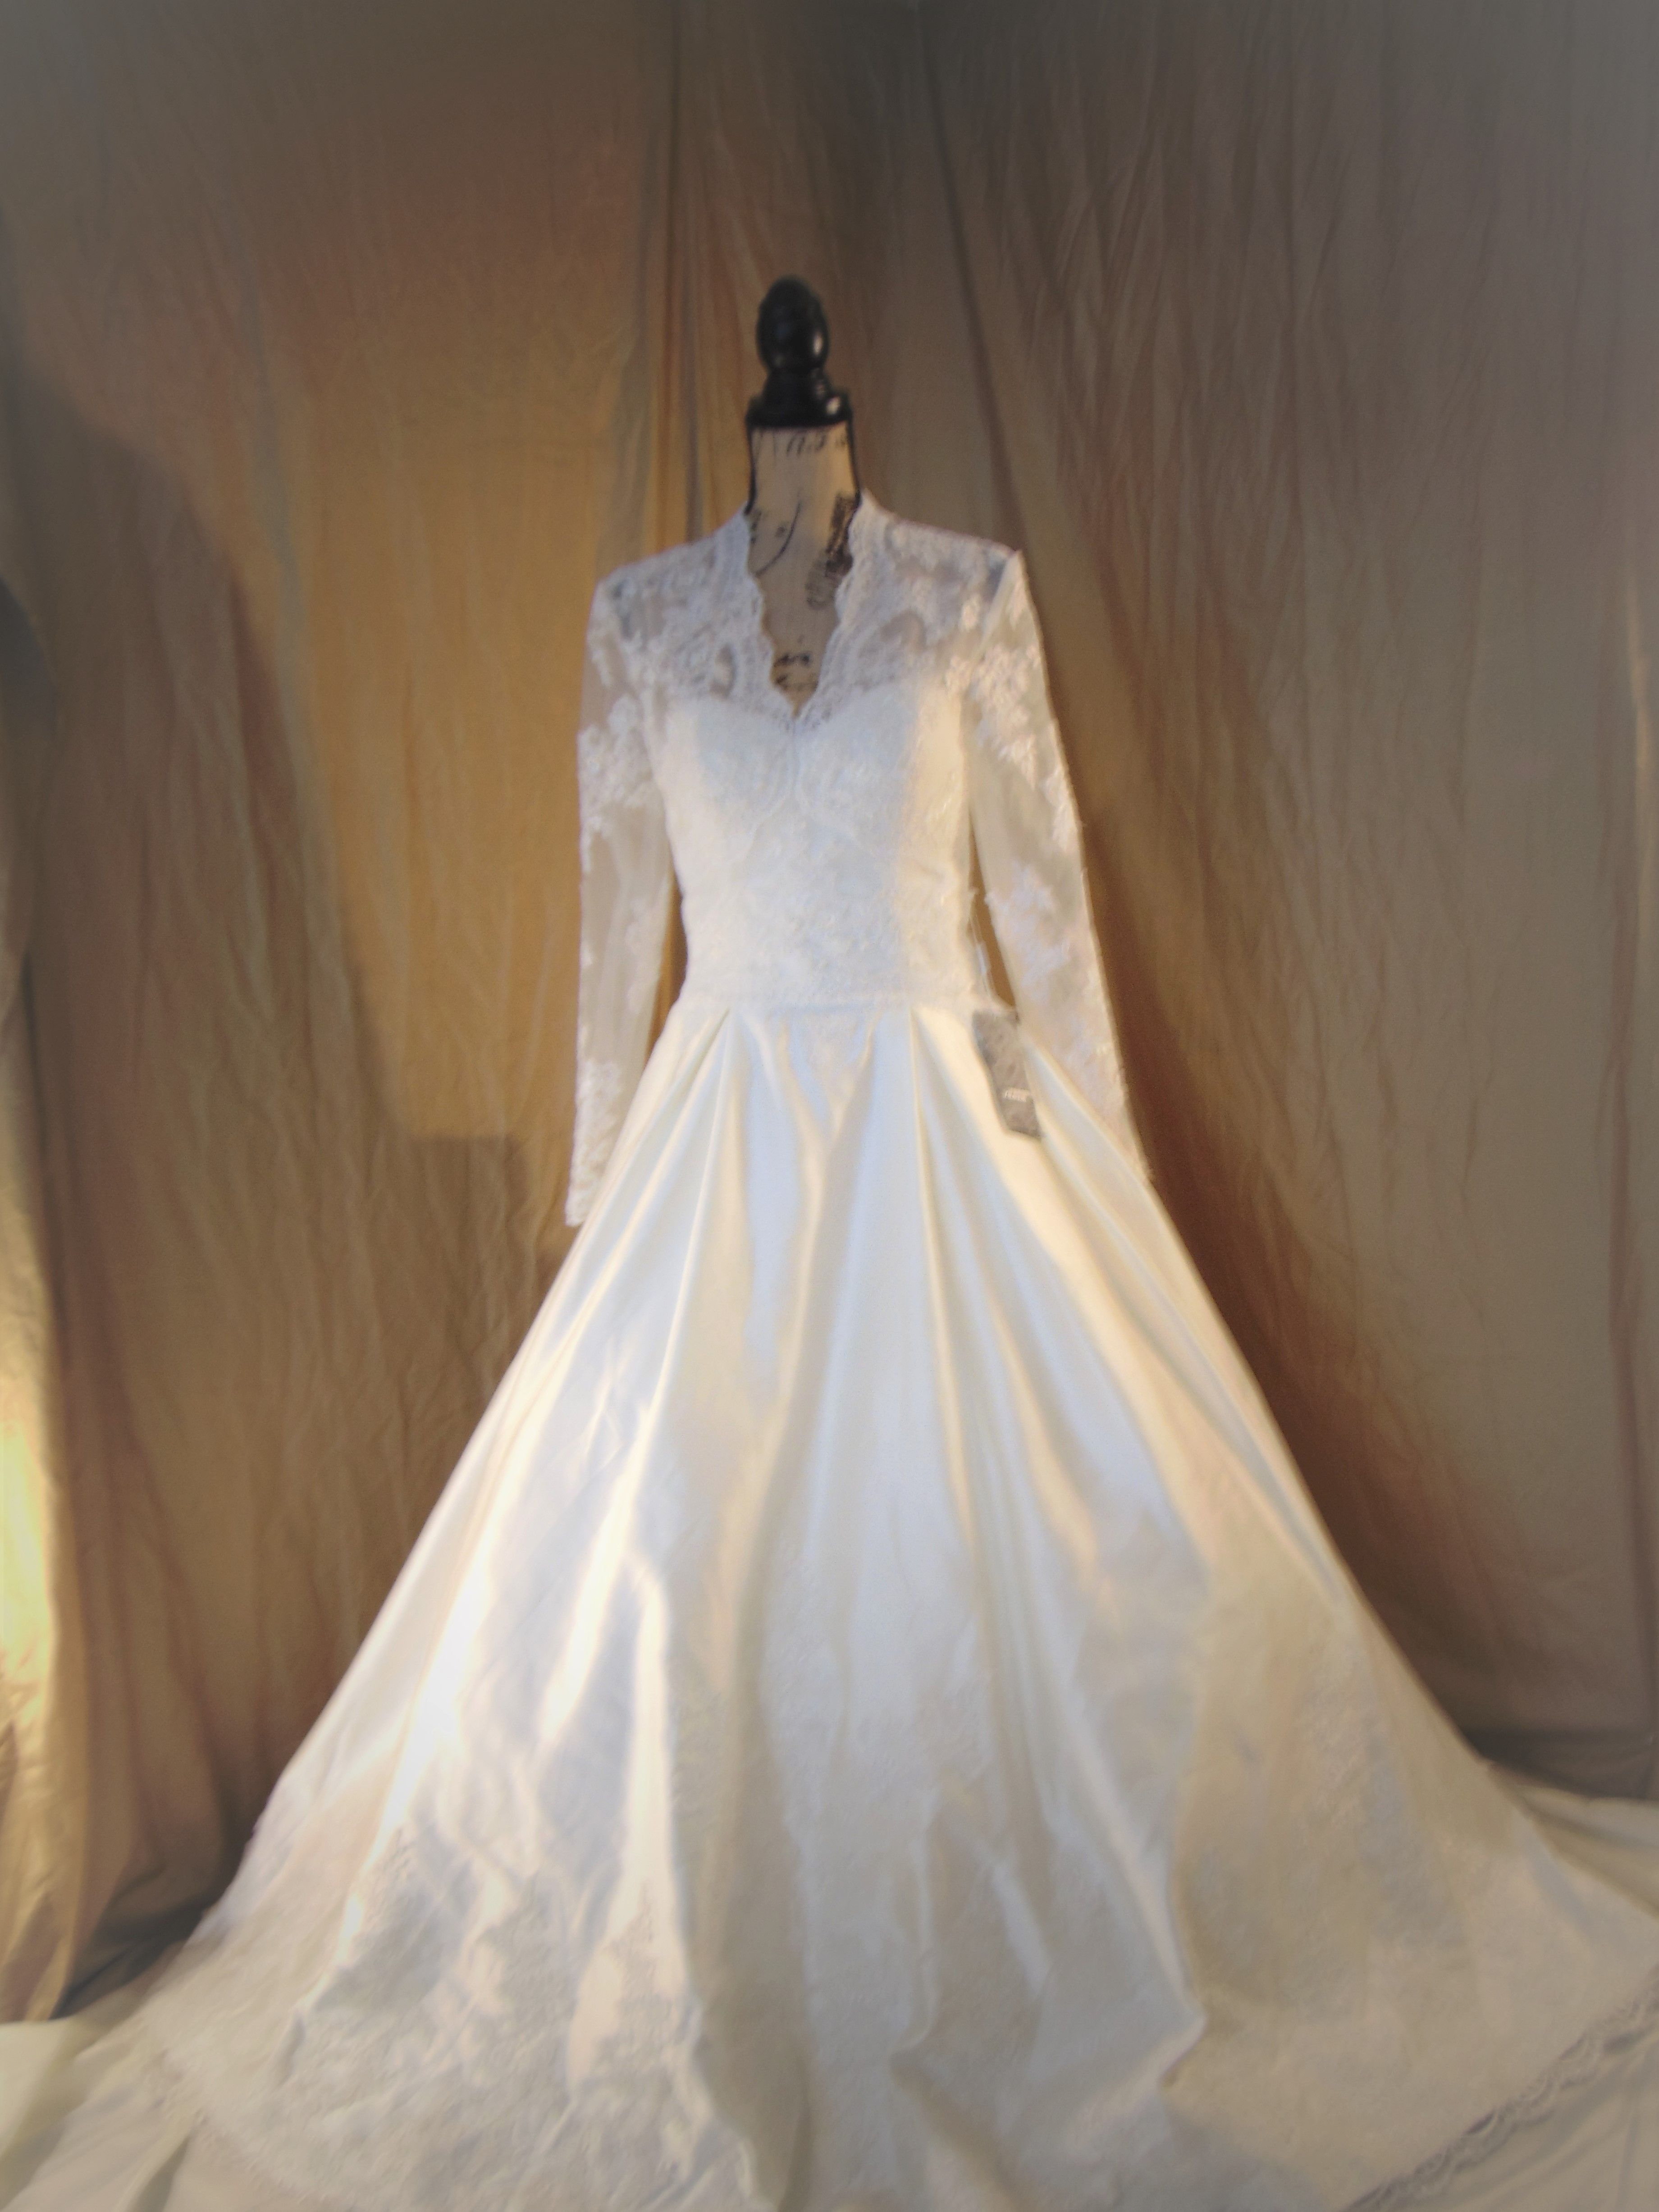 Giving Back To Brides Both Budget Savvy And Brides On A Budget From New Wedding Gowns To Resale And Cons Wedding Gown Sizes Wedding Dress Resale Wedding Gowns